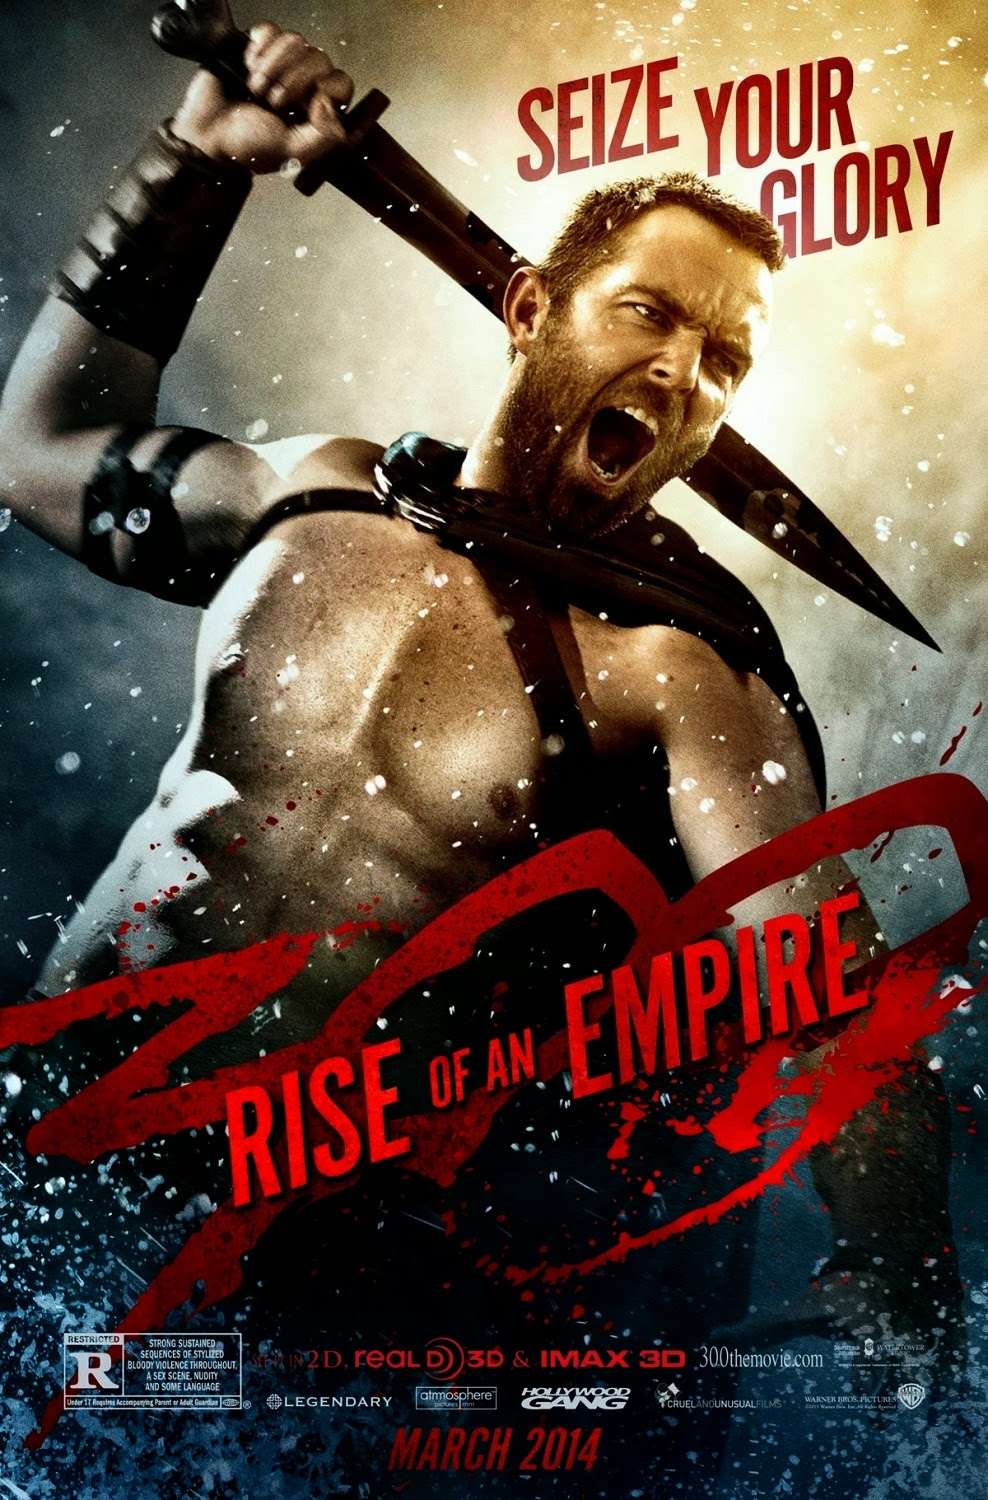 new english moviee 2014 click hear............................. 300+Rise+of+an+Empire+HD+Wallpaper+Free+Download+%25285%2529